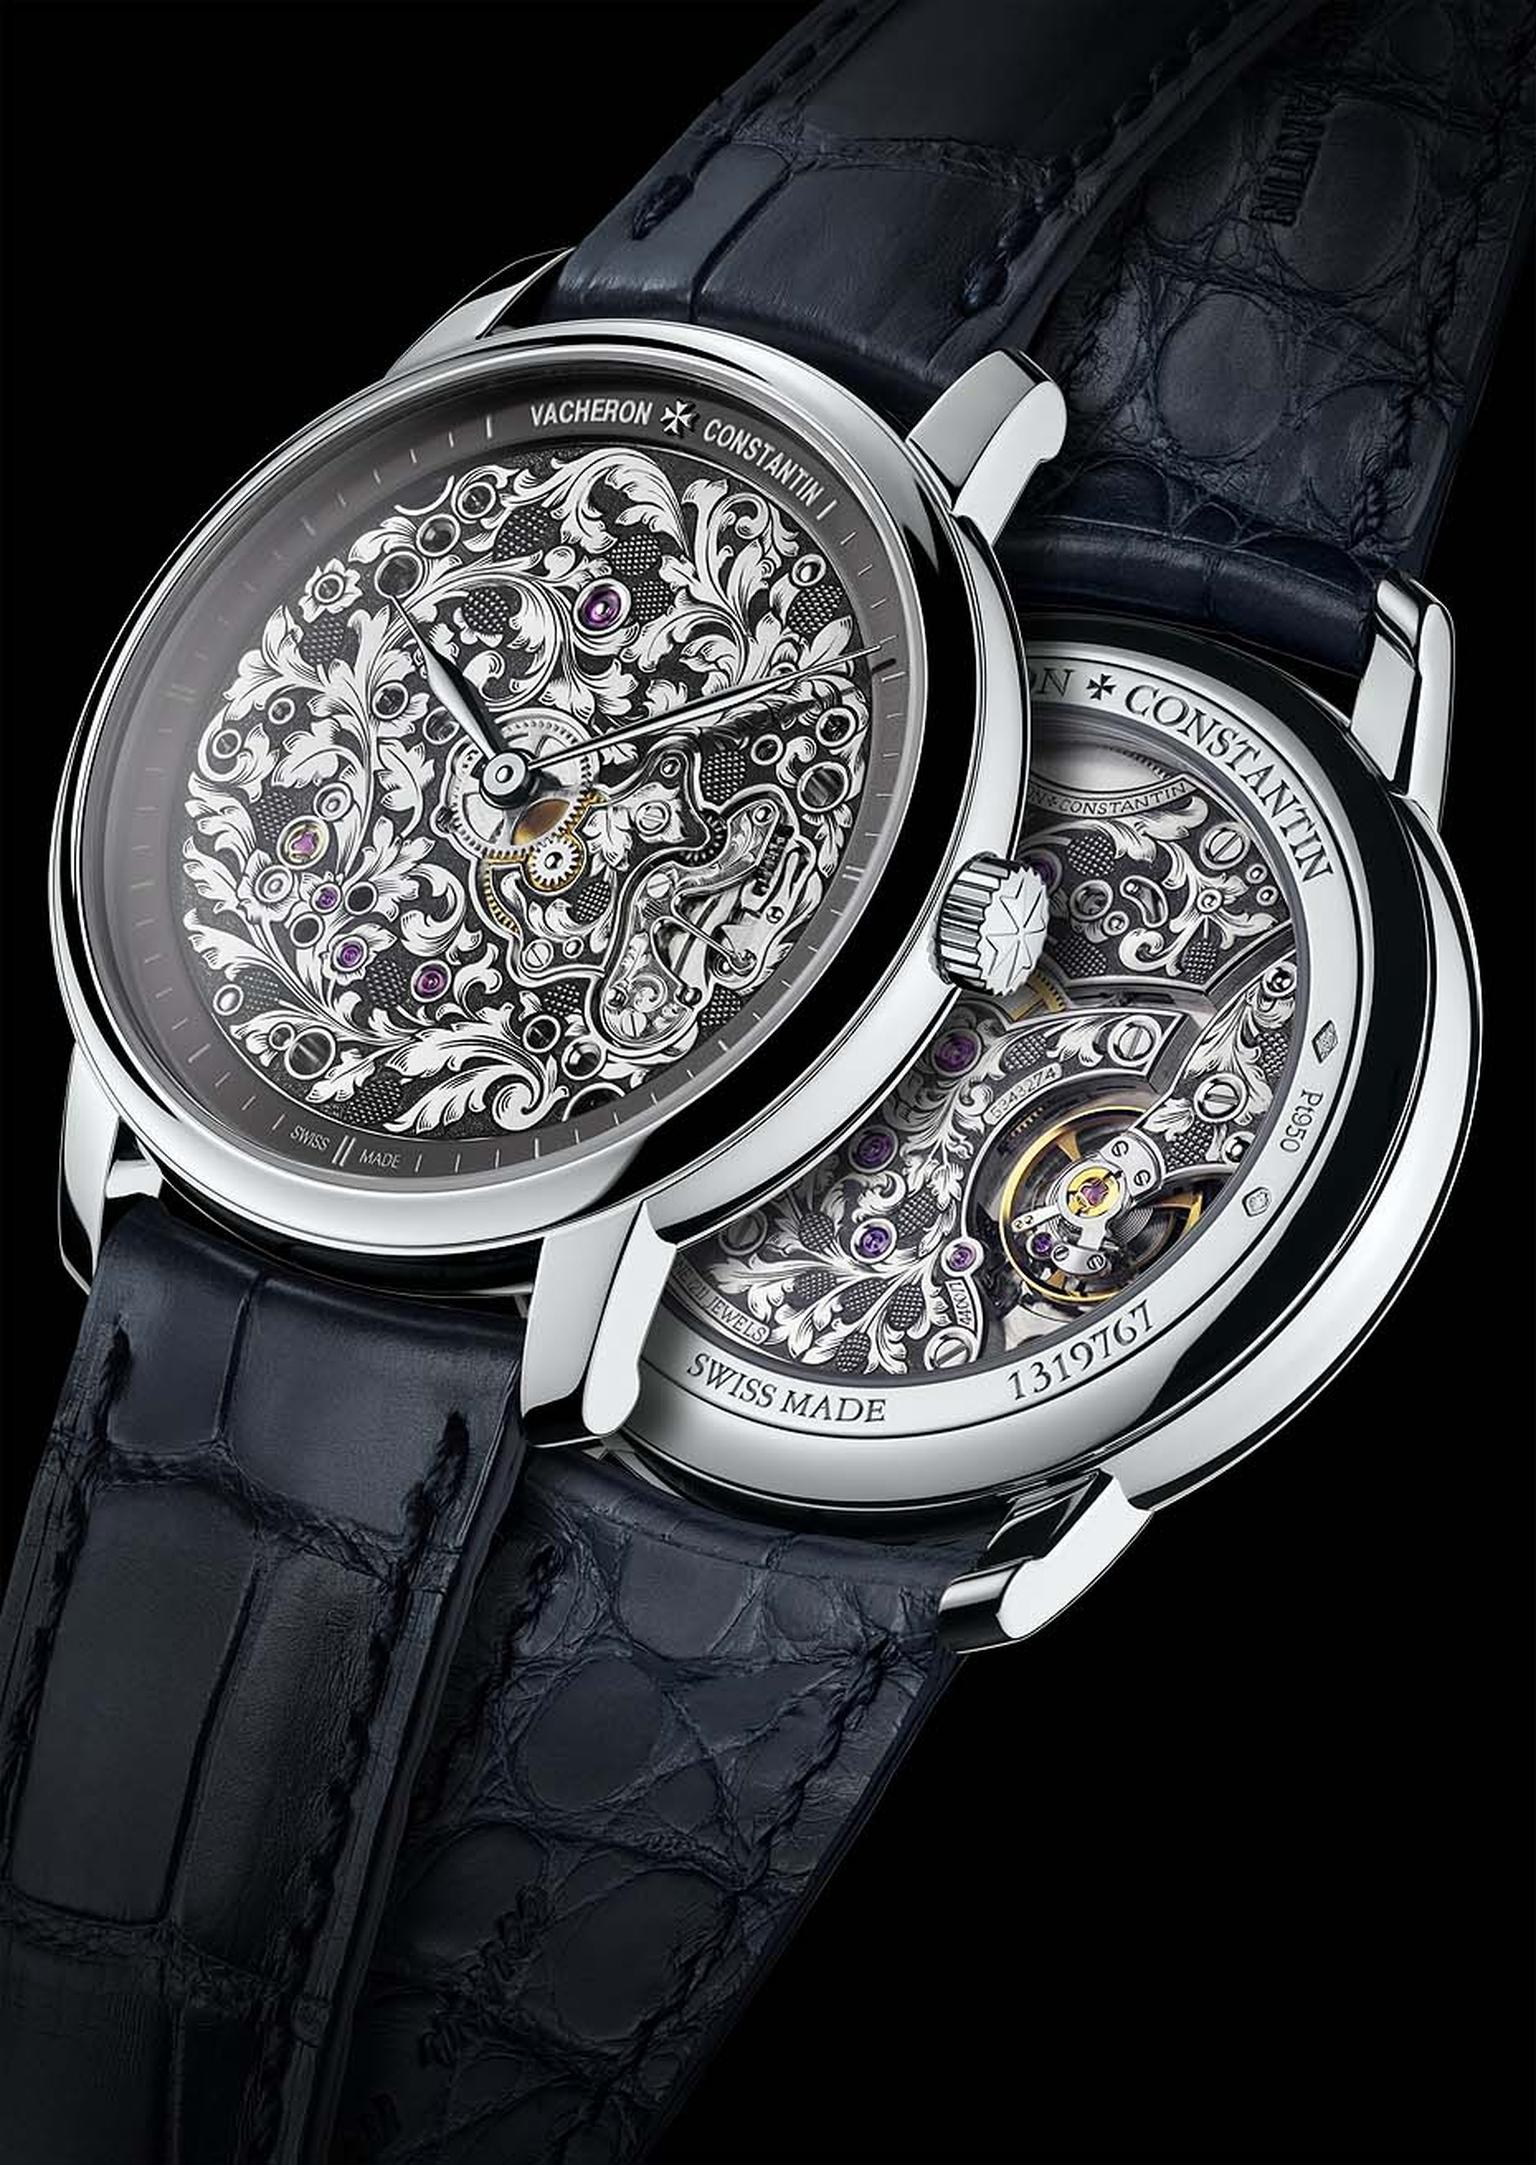 Vacheron Constantin Métiers d'Art Mécaniques Gravées calibre 4400 has been hand-engraved with acanthus leaf motifs on both sides of the movement. The watch is presented in a 39mm platinum case.